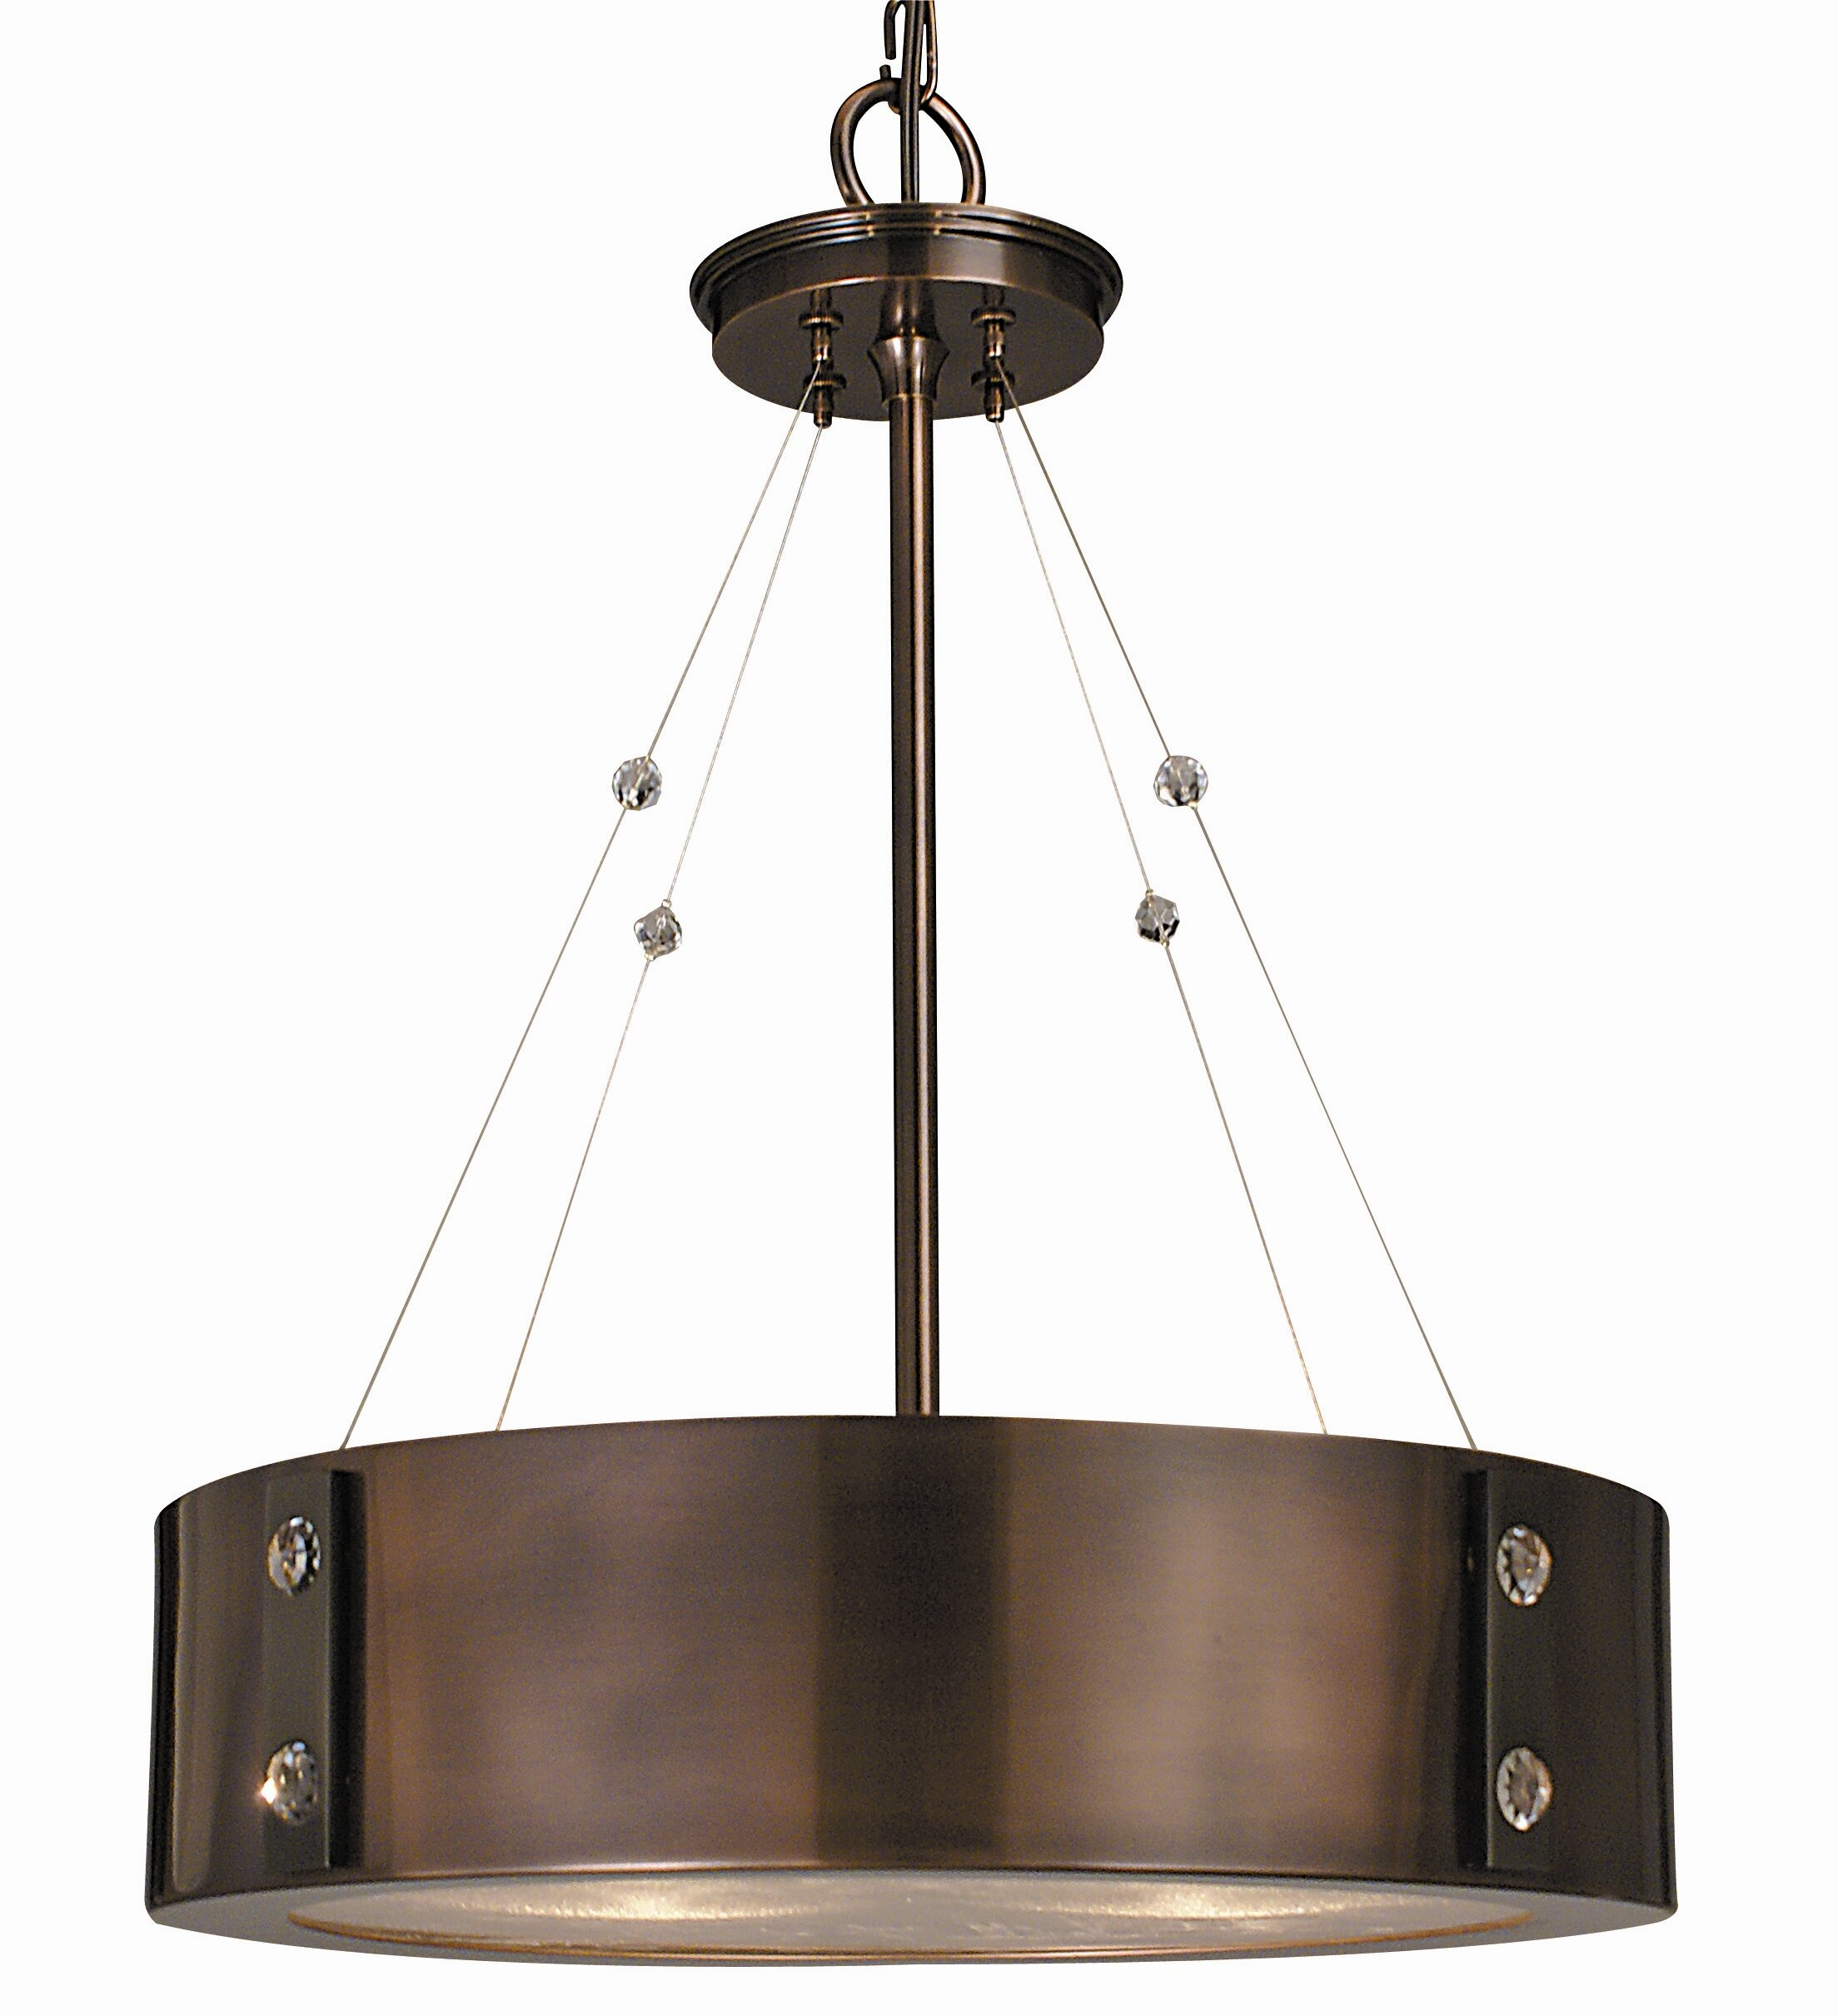 Industrial Astoria Grand Ceiling Lights You Ll Love In 2021 Wayfair